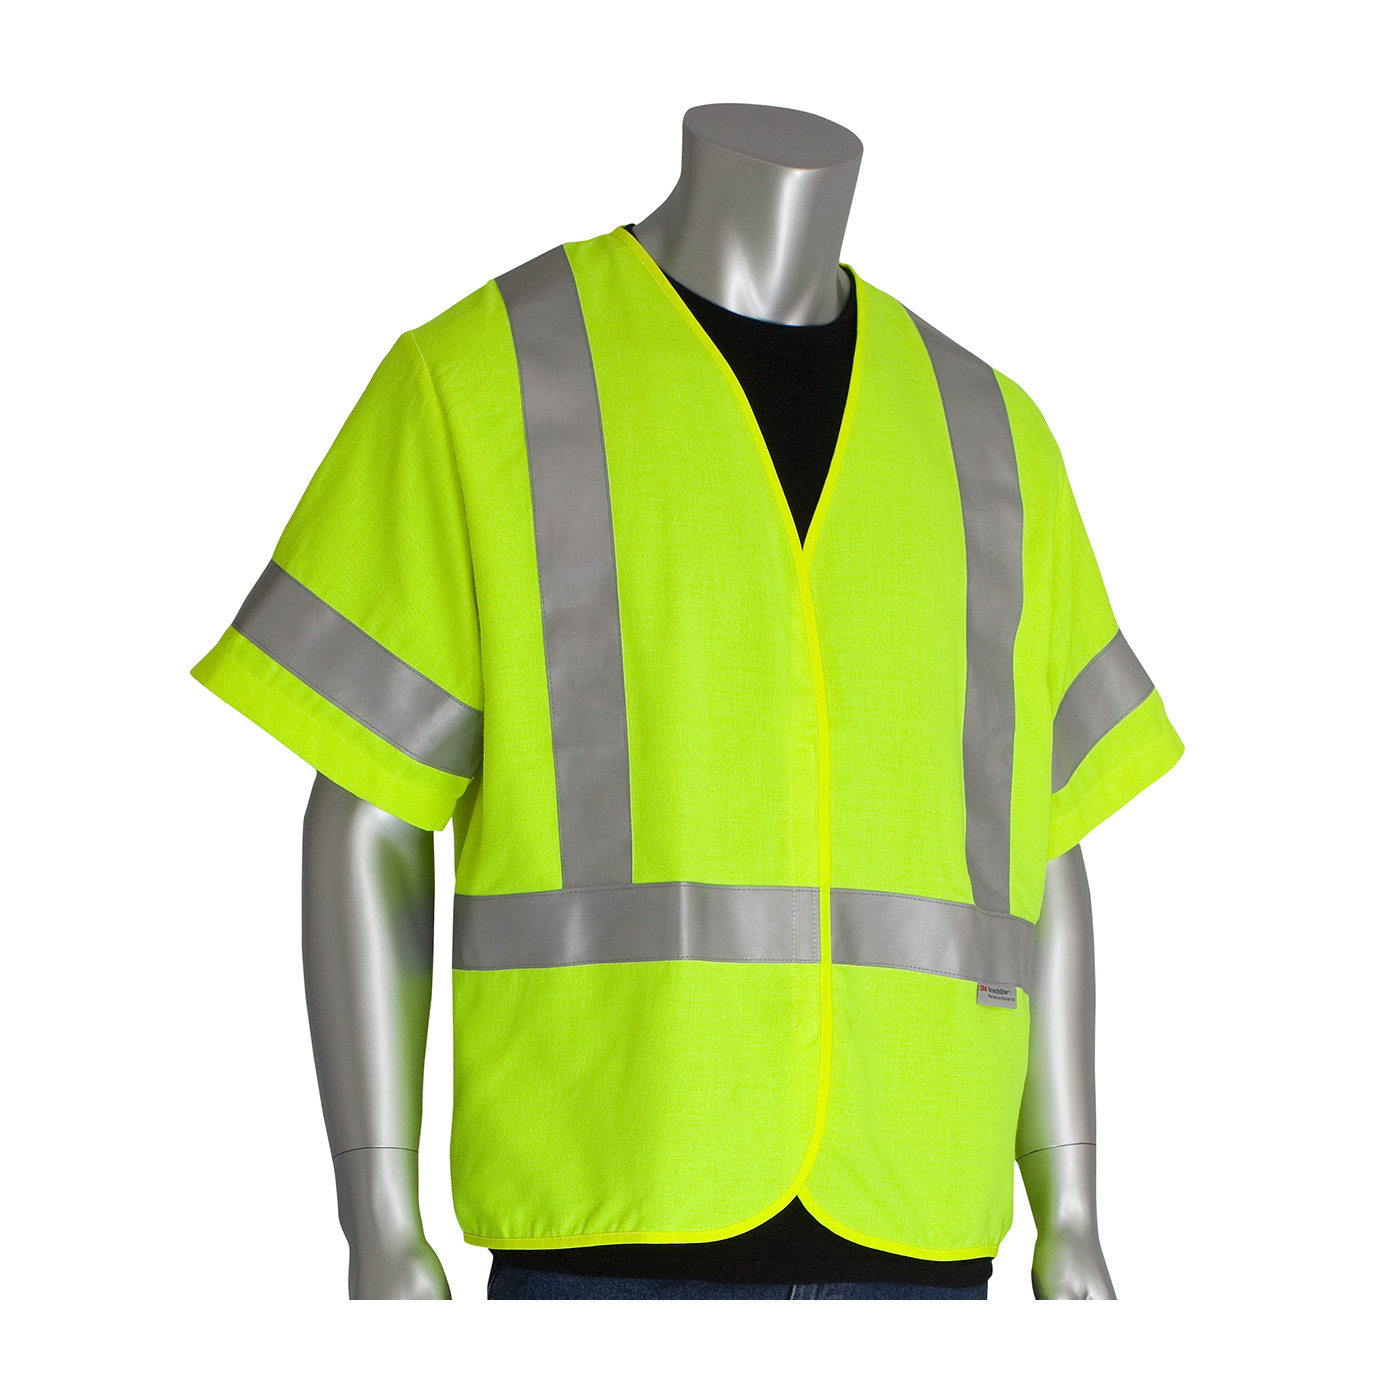 #305-3000 PIP Flame Resistant Safety Vest w/ Reflective Tape - Class R3